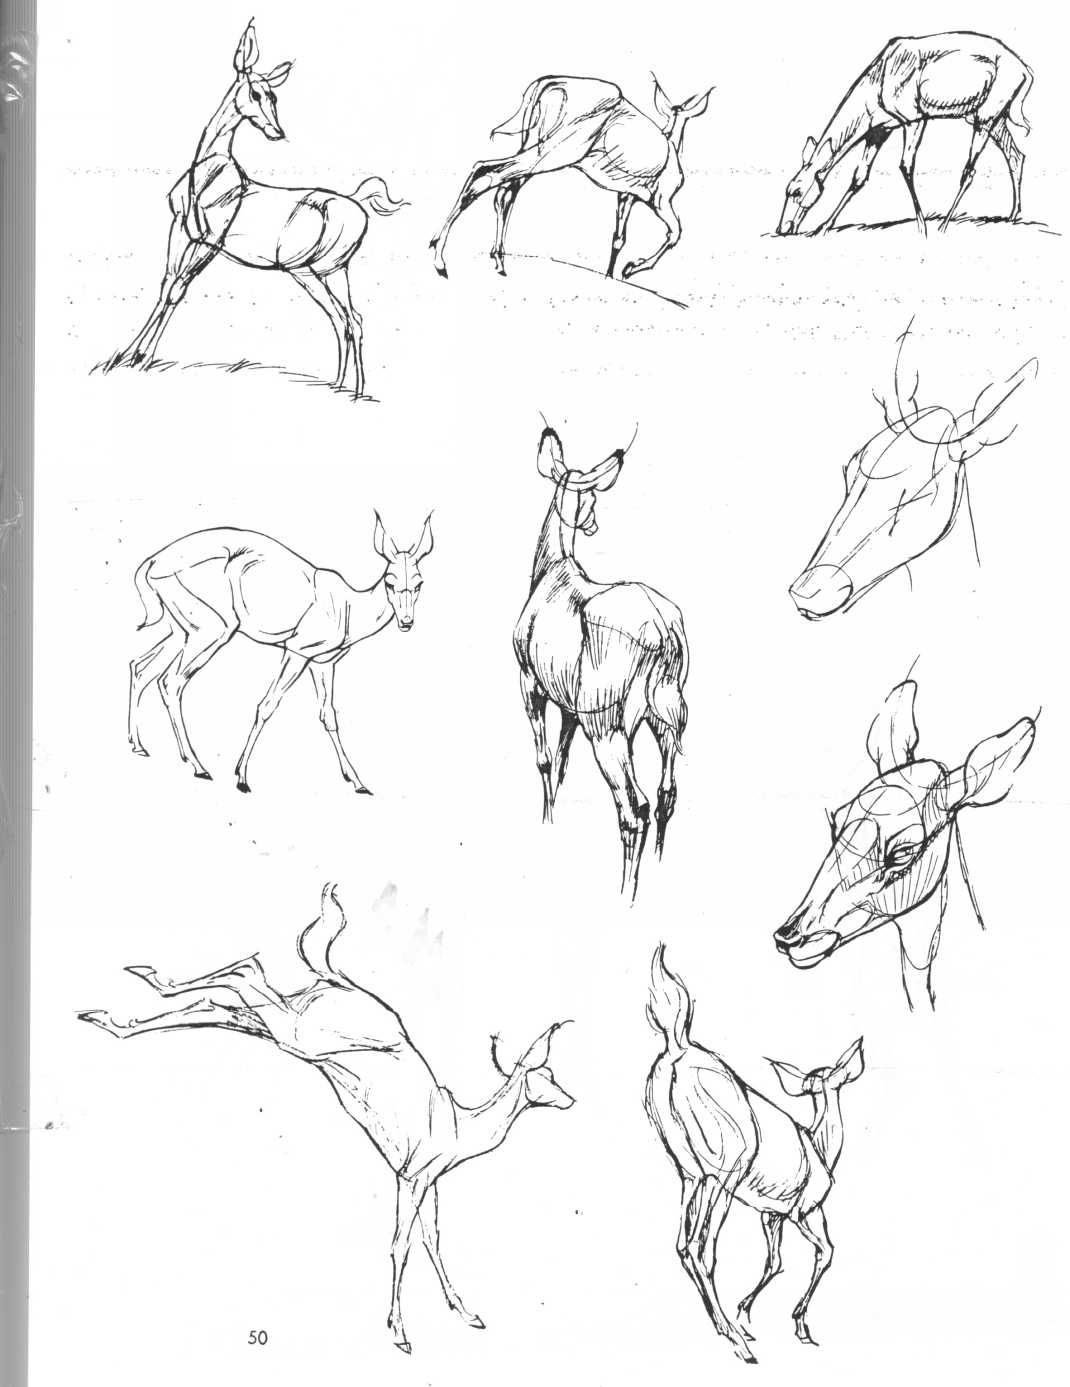 Pin by Sarah Steen on Art | Pinterest | Draw animals, Drawings and ...